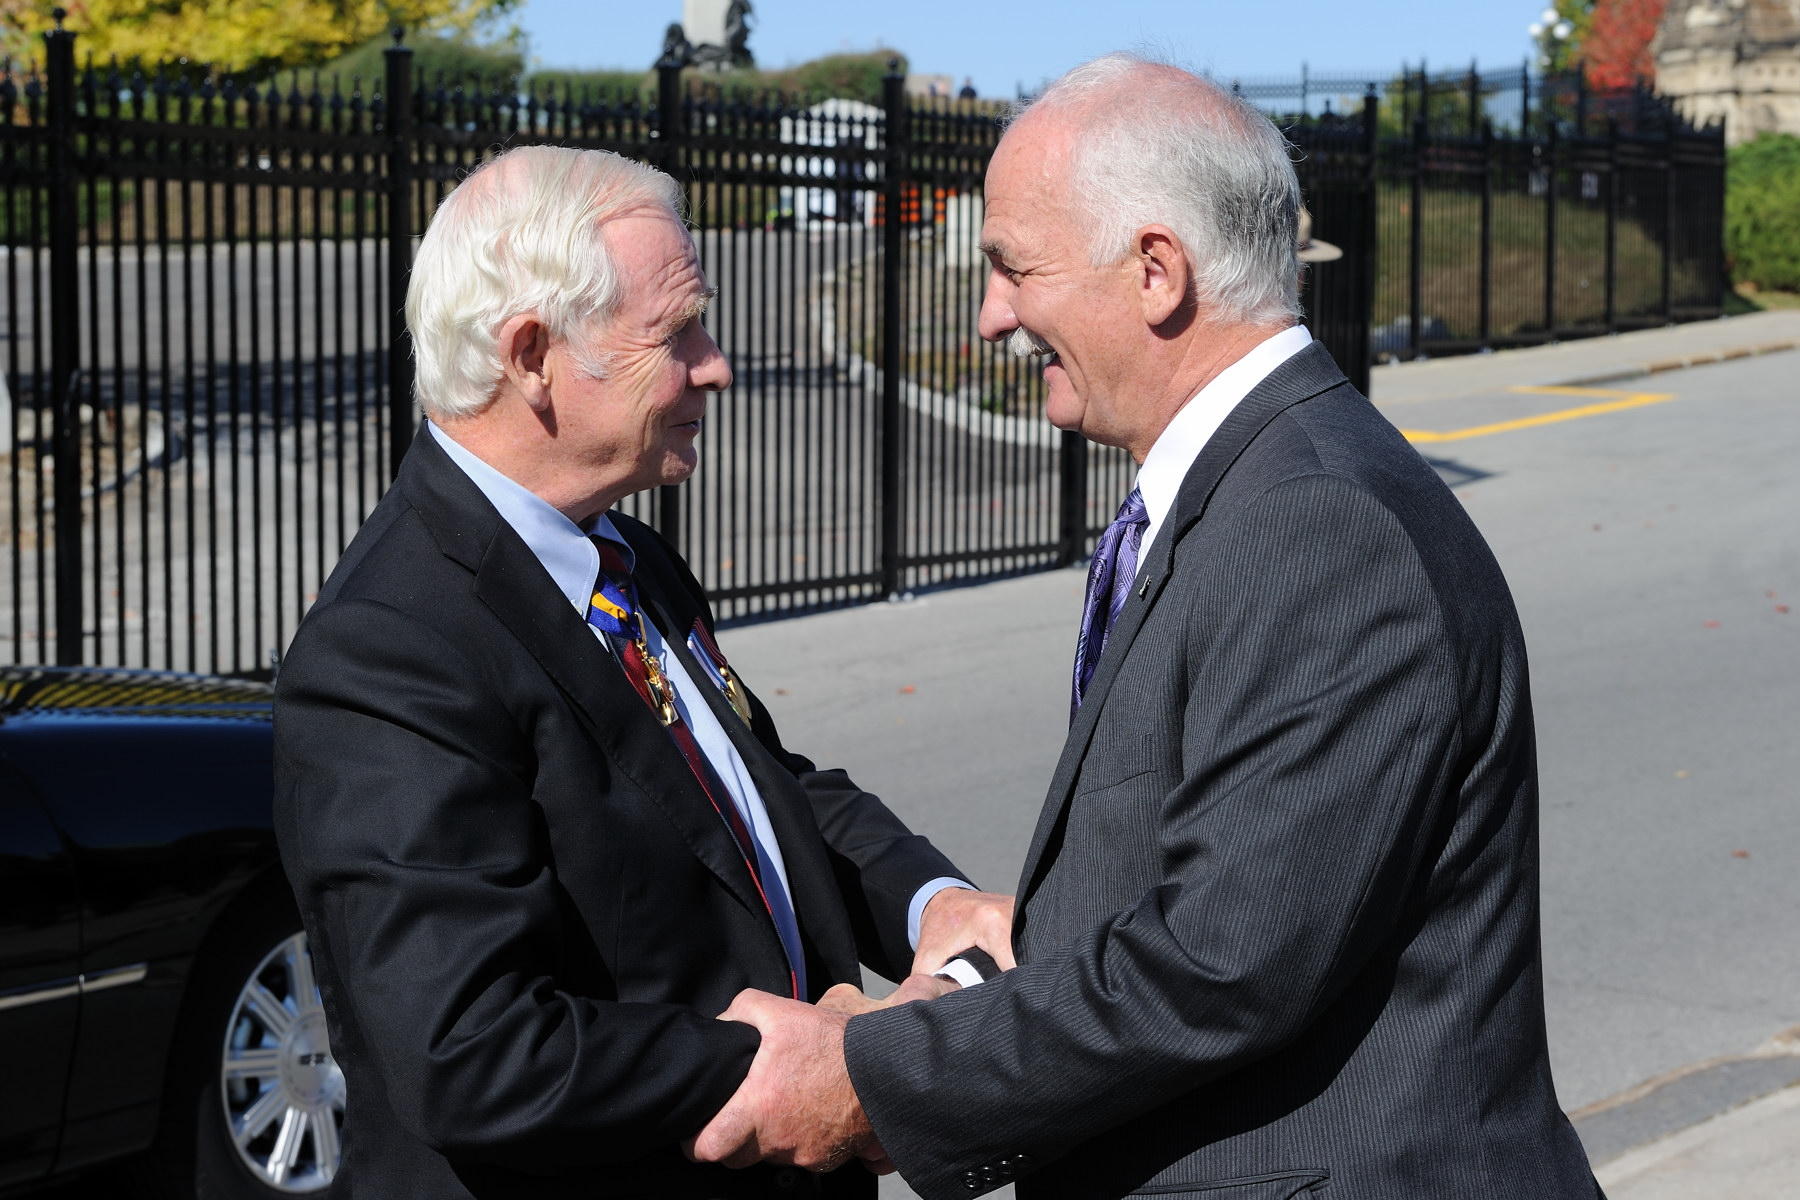 The Governor General was greeted by the Honourable Vic Toews, Minister of Public Safety.